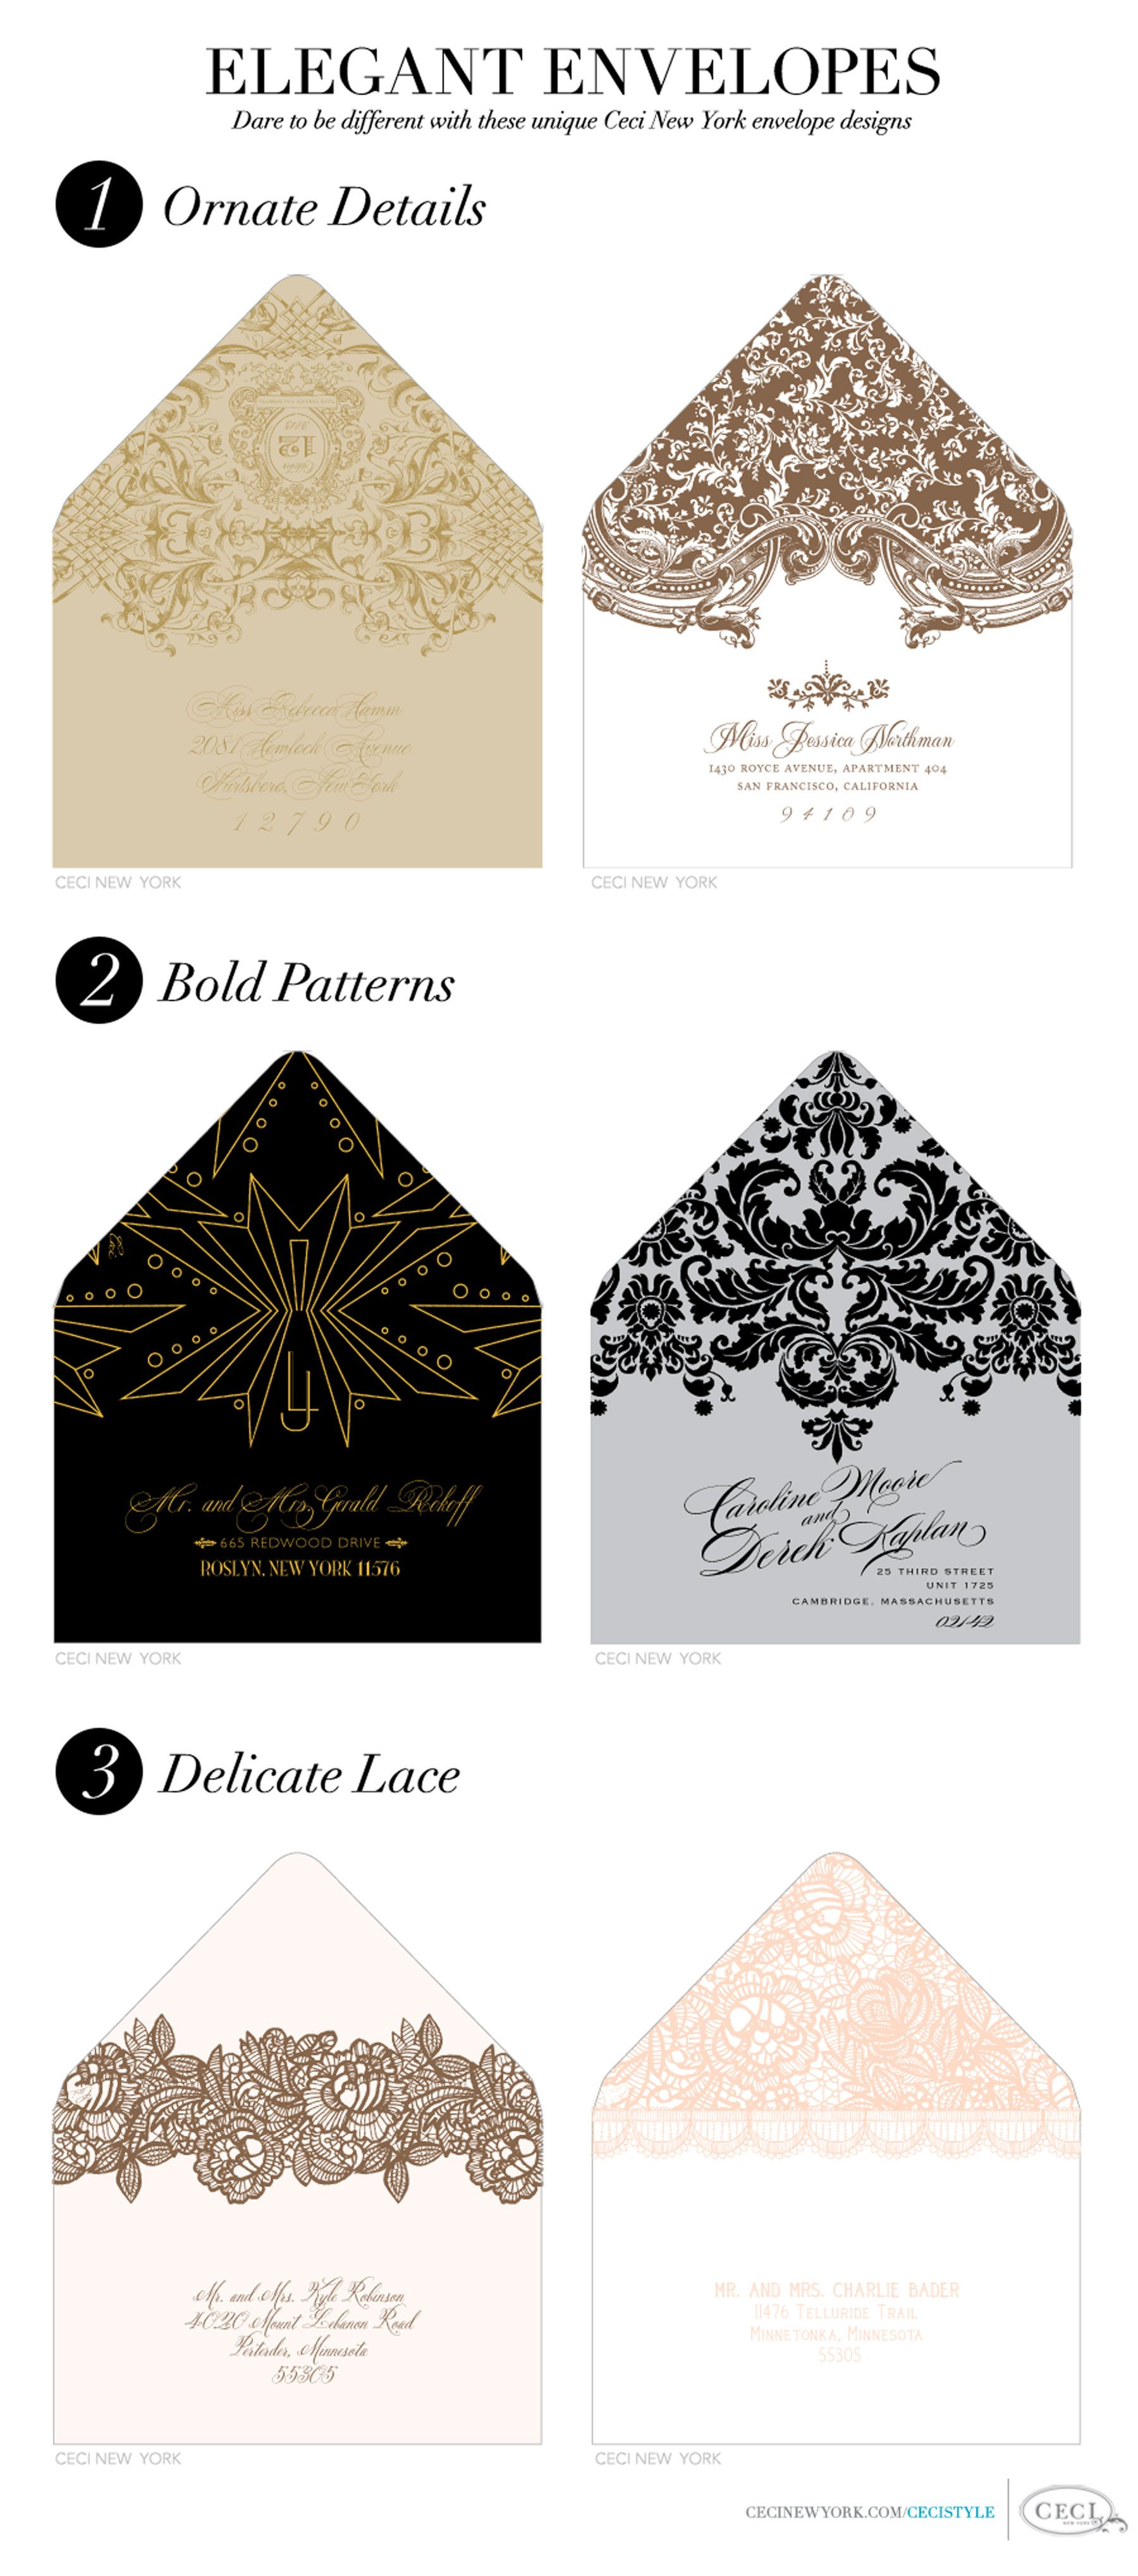 wedding invitations envelopes Think out side the invitation with Elegant Envelopes Dare to be different with these unique Ceci New York envelope designs